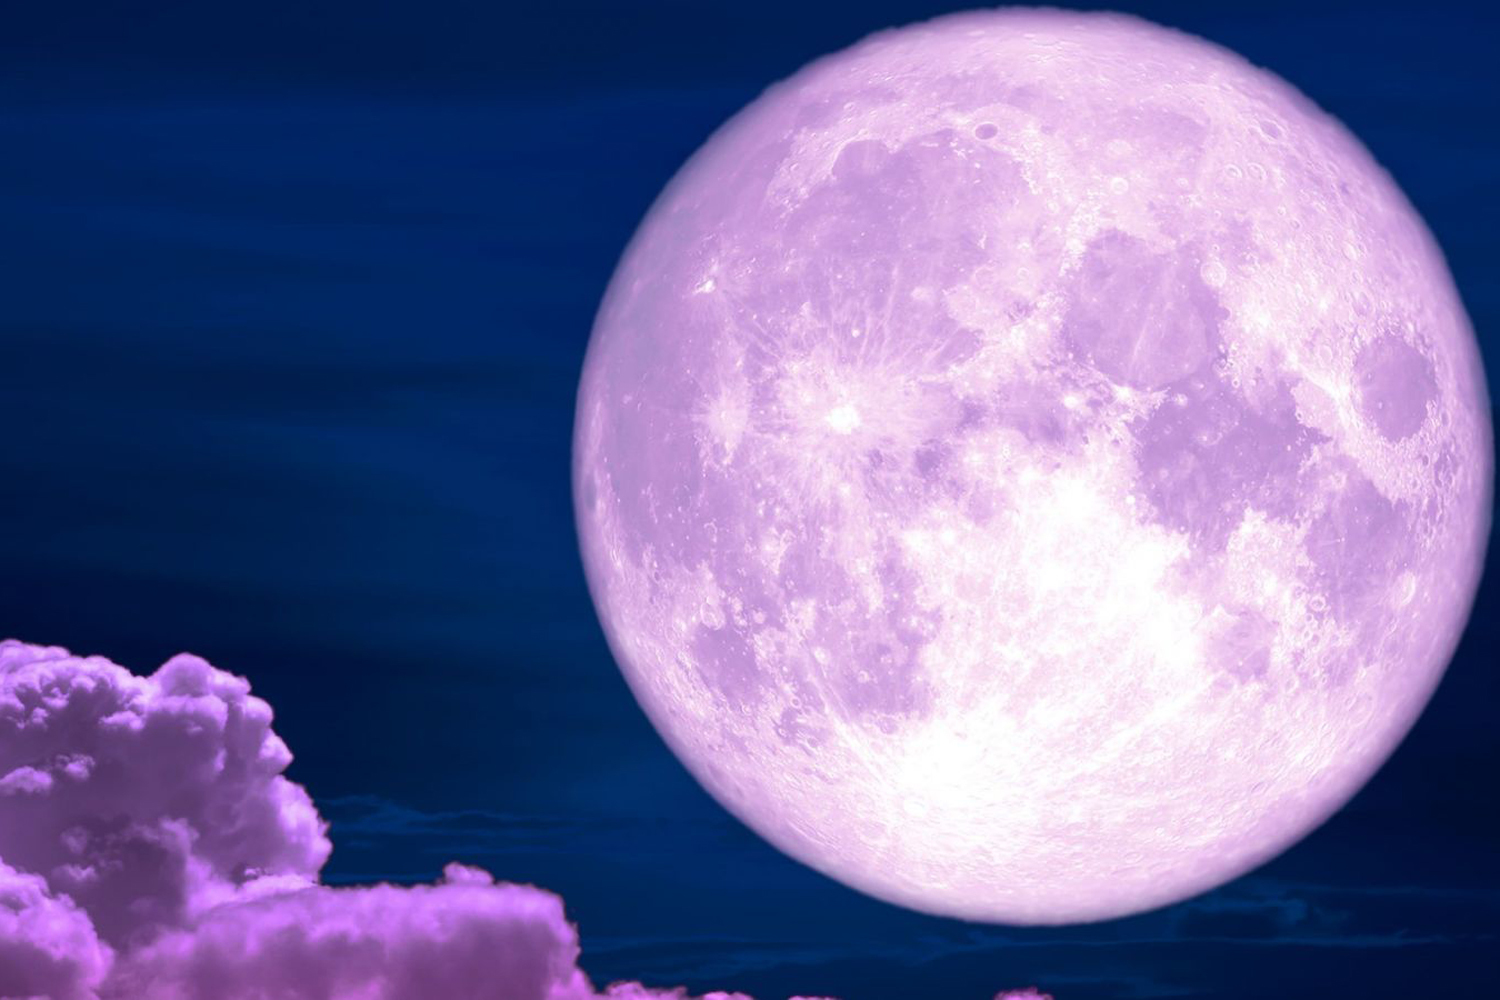 April Super Pink Moon 2020 7-8